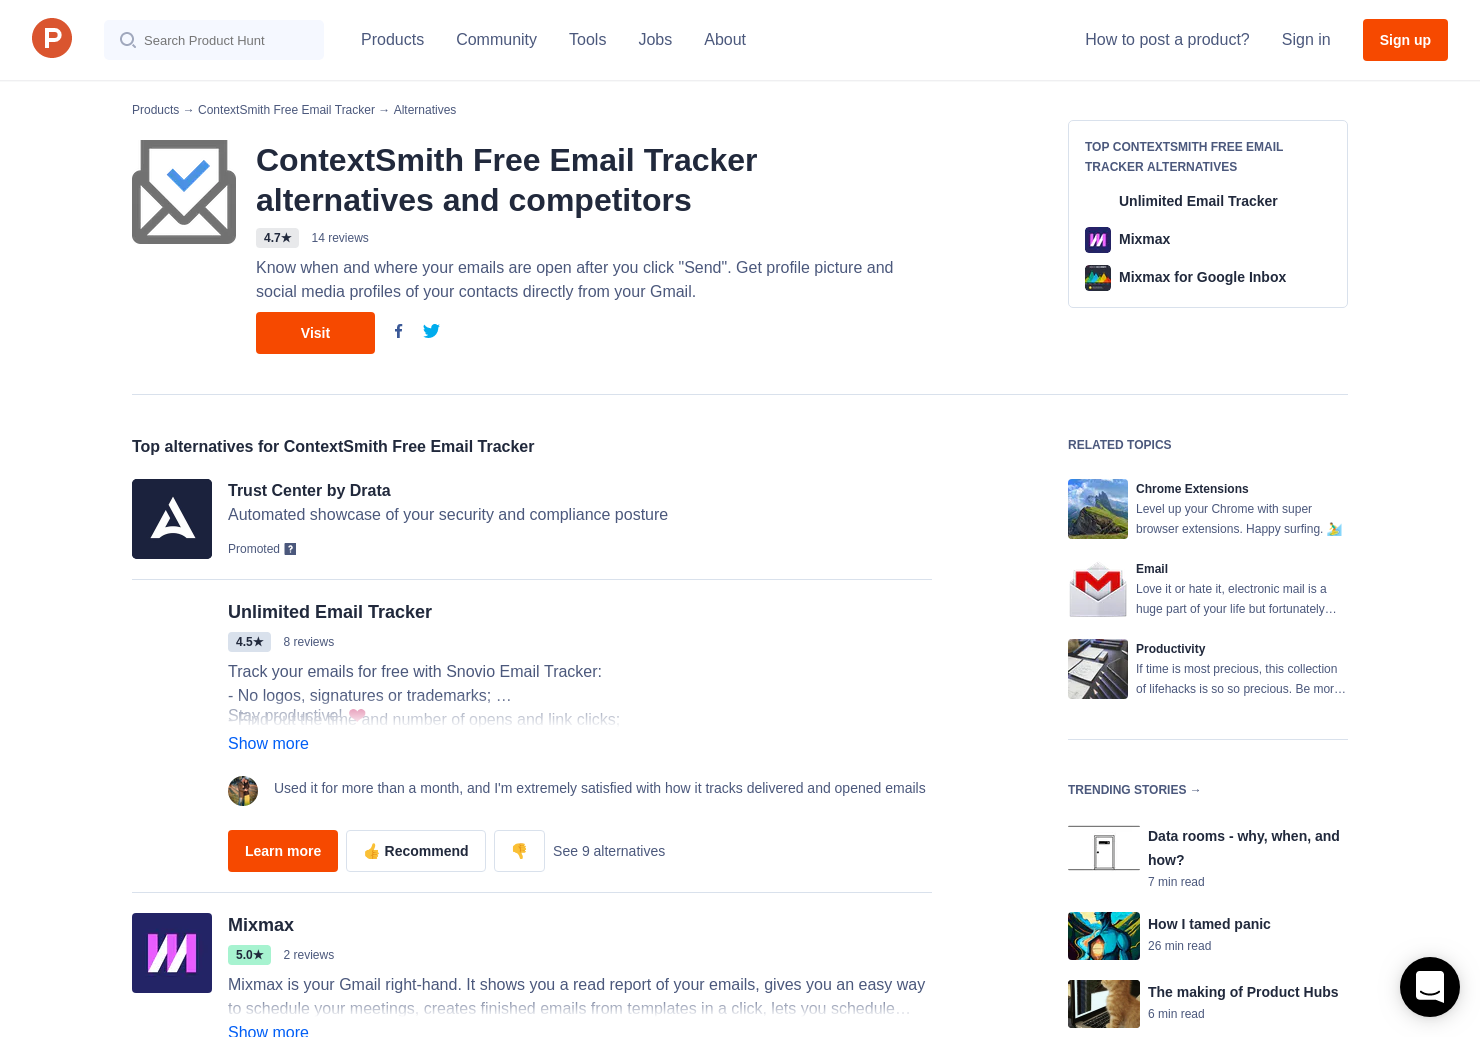 10 Alternatives to ContextSmith Free Email Tracker for Chrome